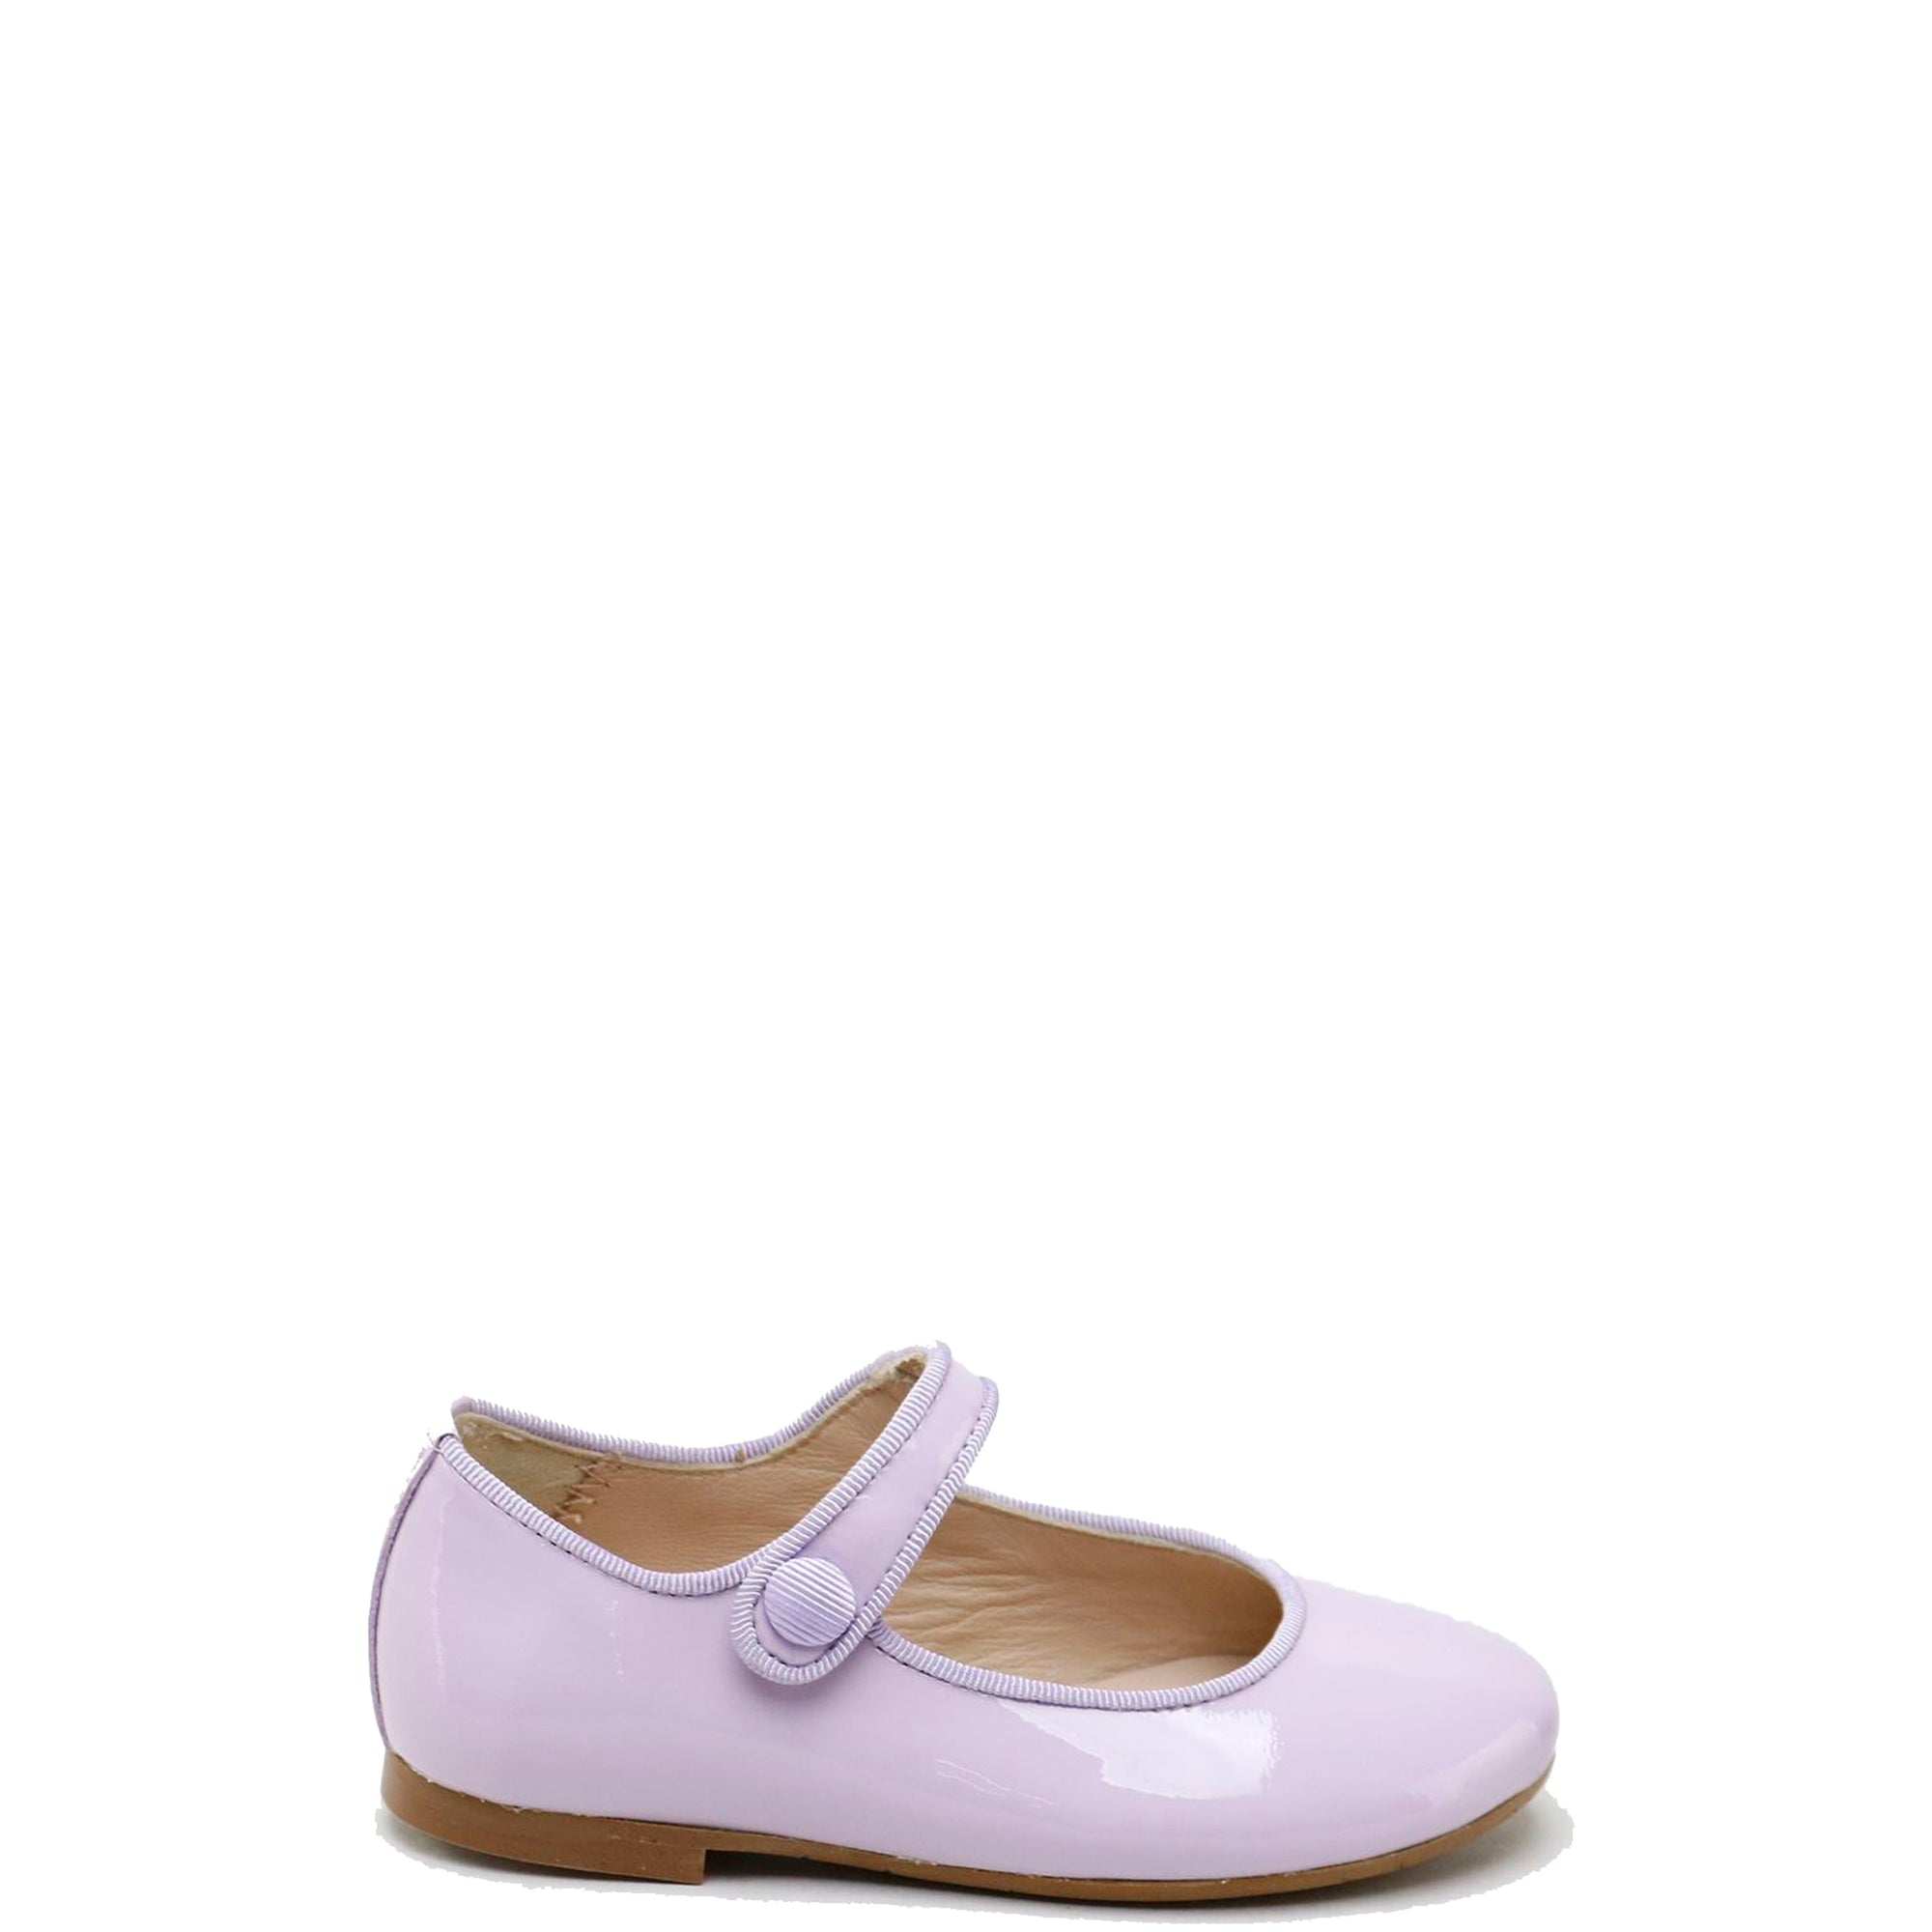 Papanatas Lilac Patent Mary Jane-Tassel Children Shoes